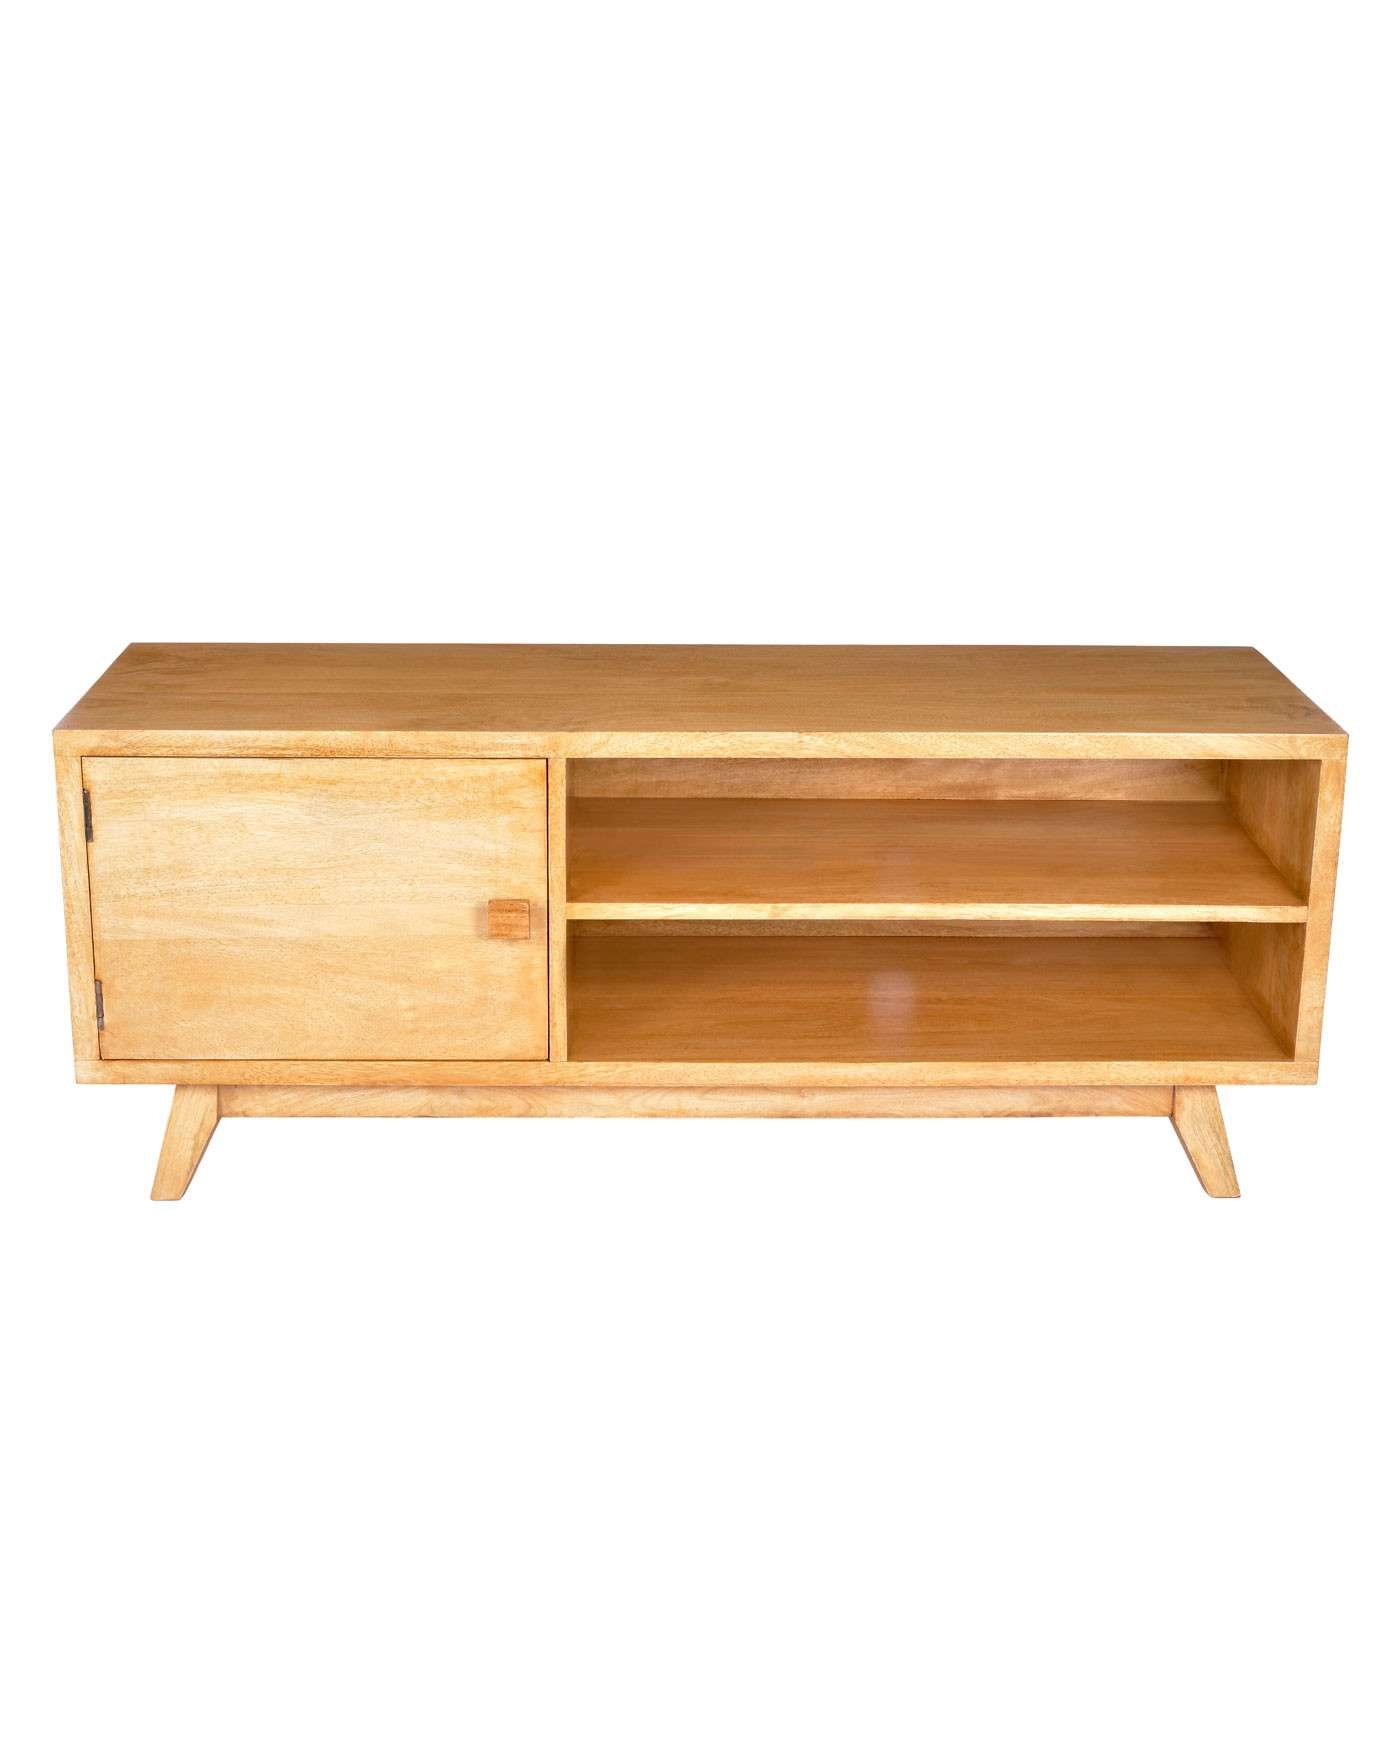 Retro Wooden Tv Stand With Shelf 100% Solid Mango Wood Oak Shade Intended For Hard Wood Tv Stands (View 12 of 15)